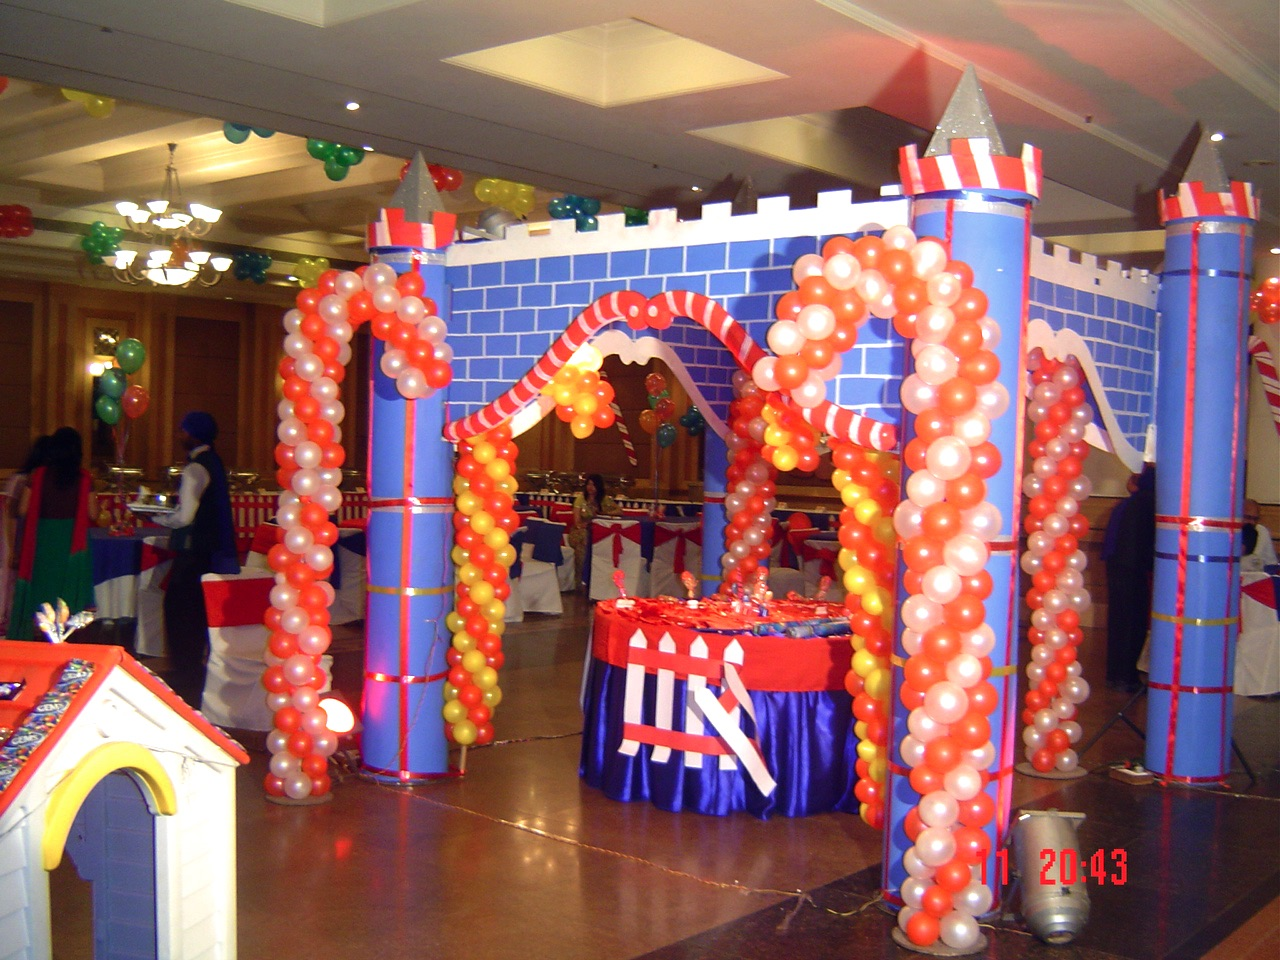 Candy land theme party planner in Delhi and Gurgaon, Candyland theme party organizer in Delhi and Gurgaon